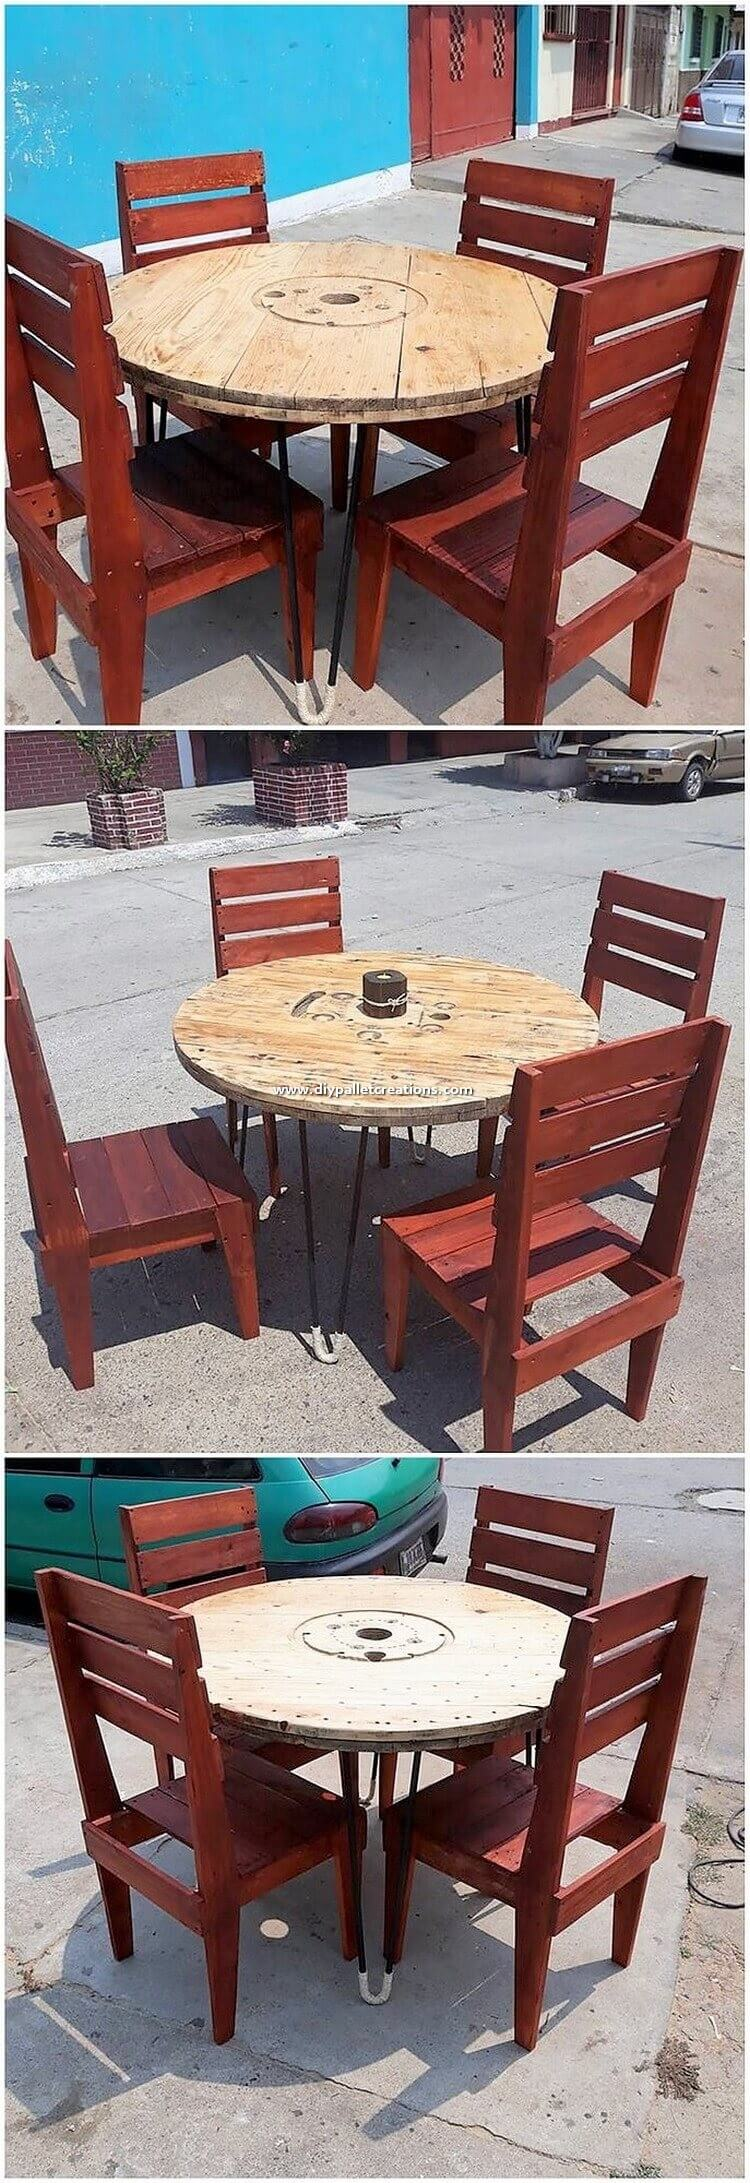 Pallet-Chairs-and-Round-Top-Table